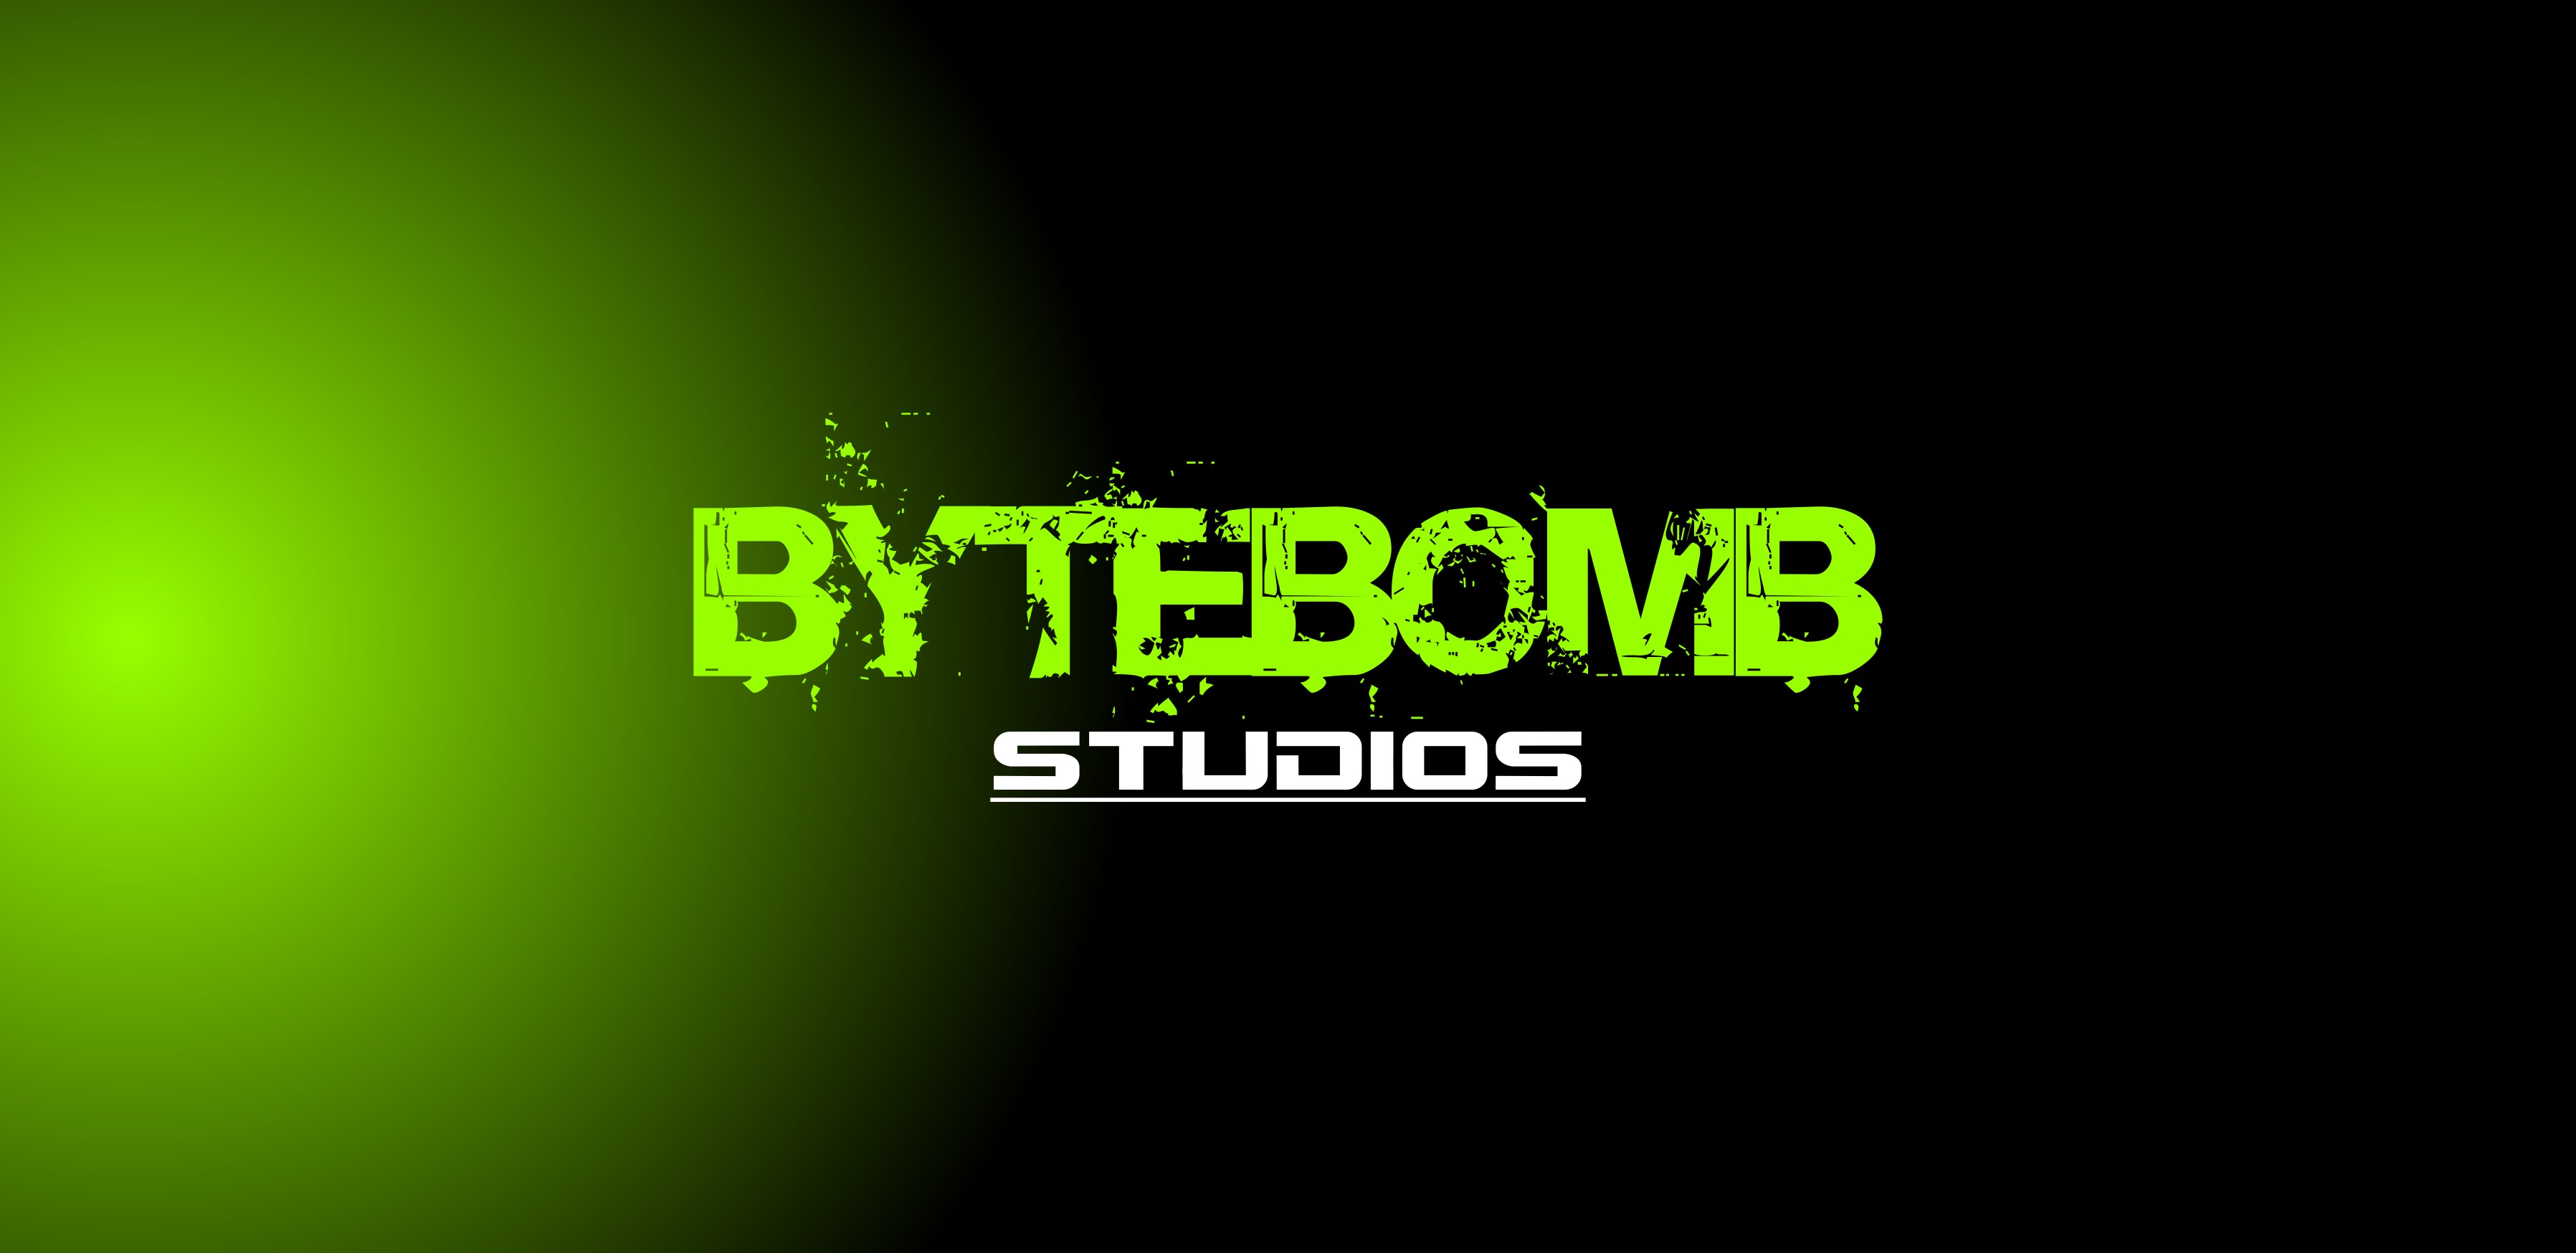 Logo Design by Crispin Jr Vasquez - Entry No. 16 in the Logo Design Contest Captivating Logo Design for ByteBomb Studios.